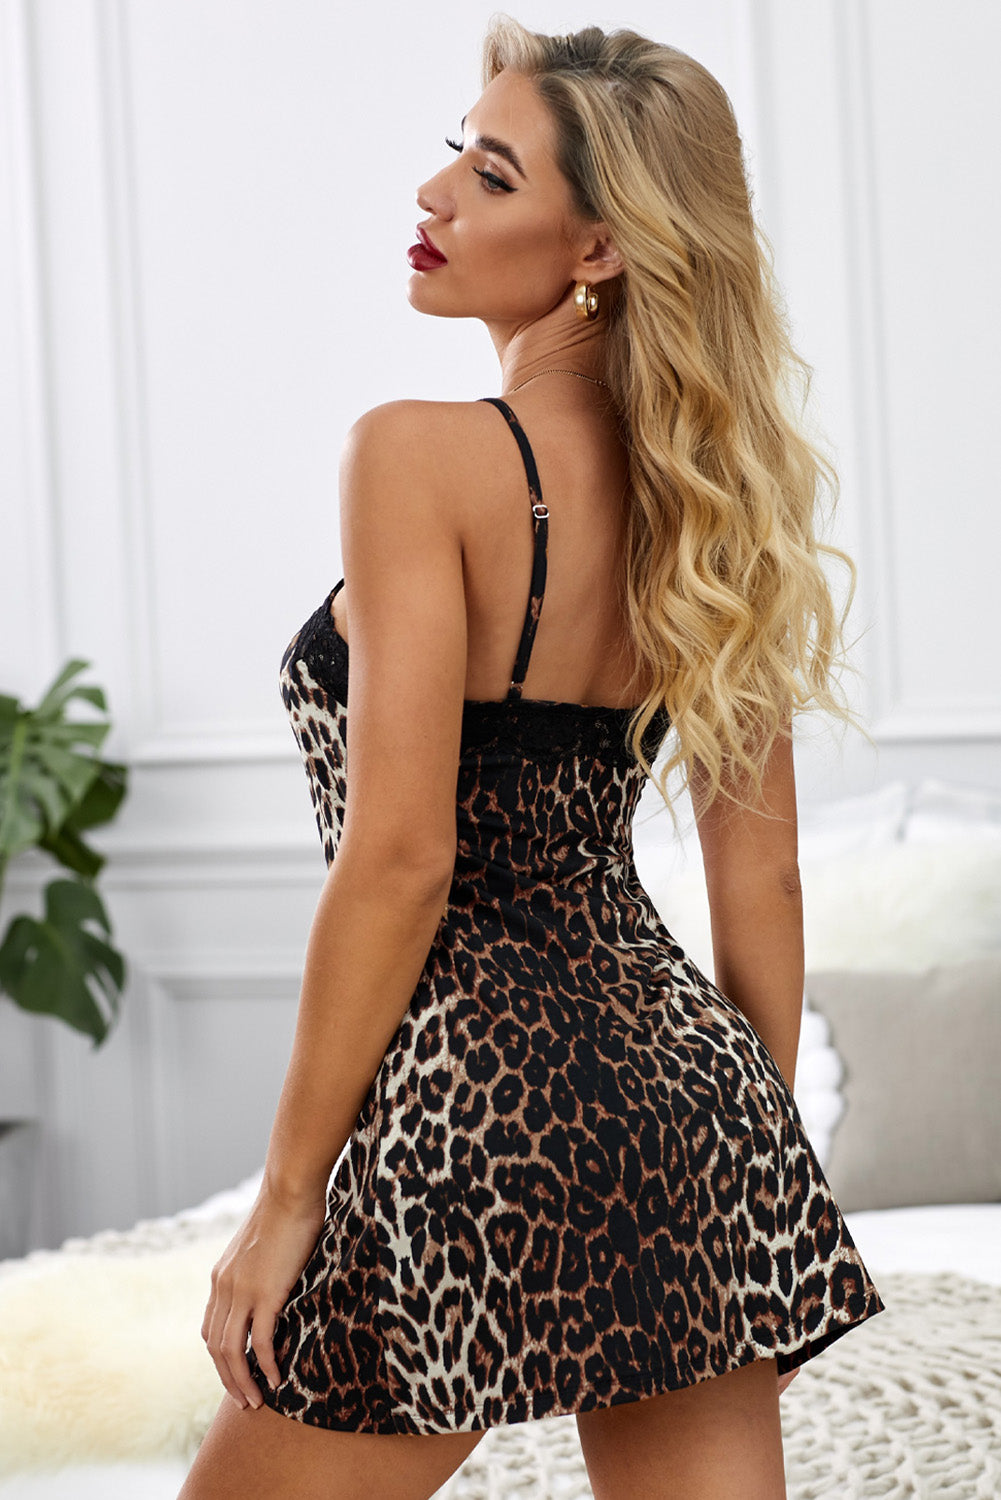 Leopard Print Lace Spaghetti Strap Chemise Babydoll & Chemise Discount Designer Fashion Clothes Shoes Bags Women Men Kids Children Black Owned Business